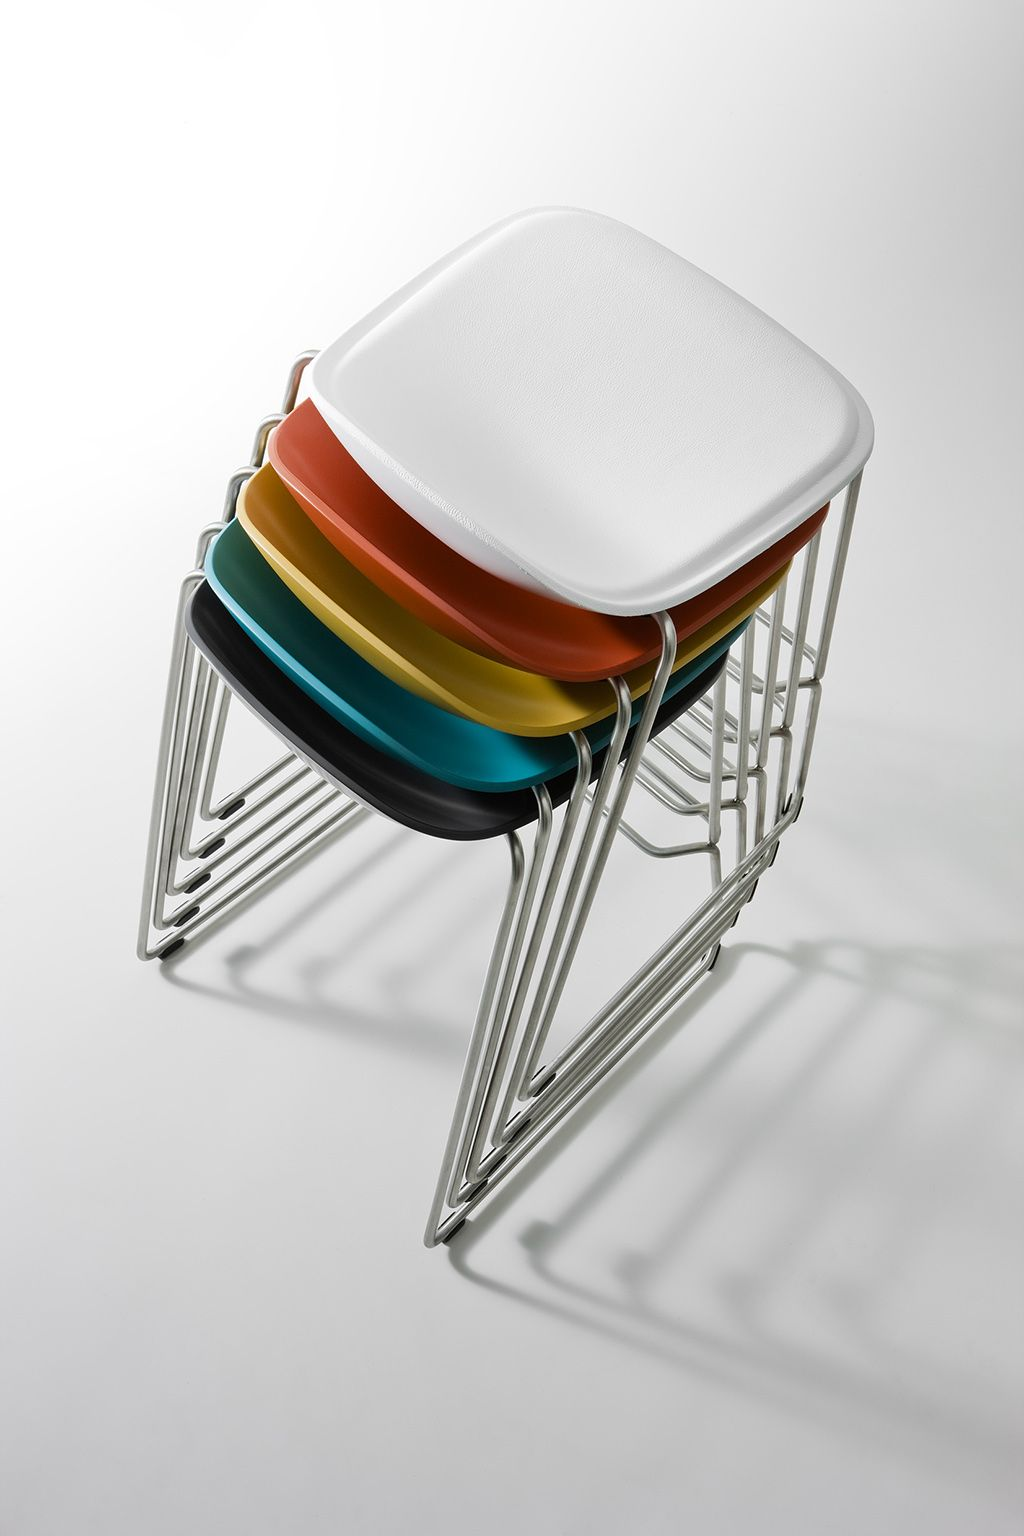 Attirant Dada Sga Bello Stackable Kitchen Stool. Designed By Giulio Castegini And  Zoran Jedrejcic | Italian Design